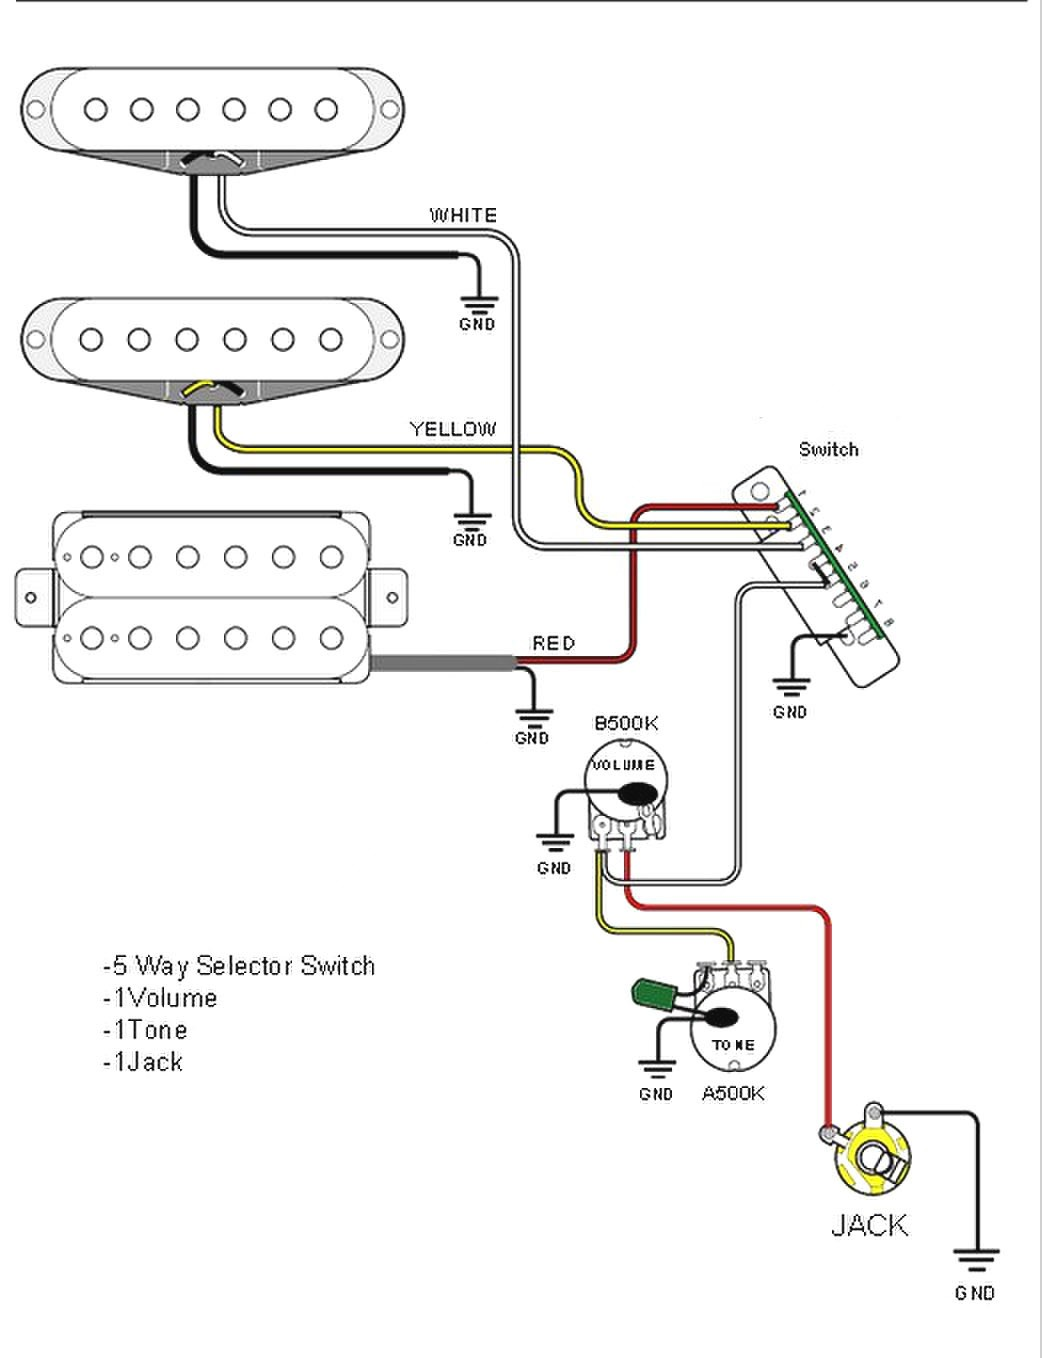 84 4wd Light Wiring Diagram Needed Dodge Ram Ramcharger Cummins